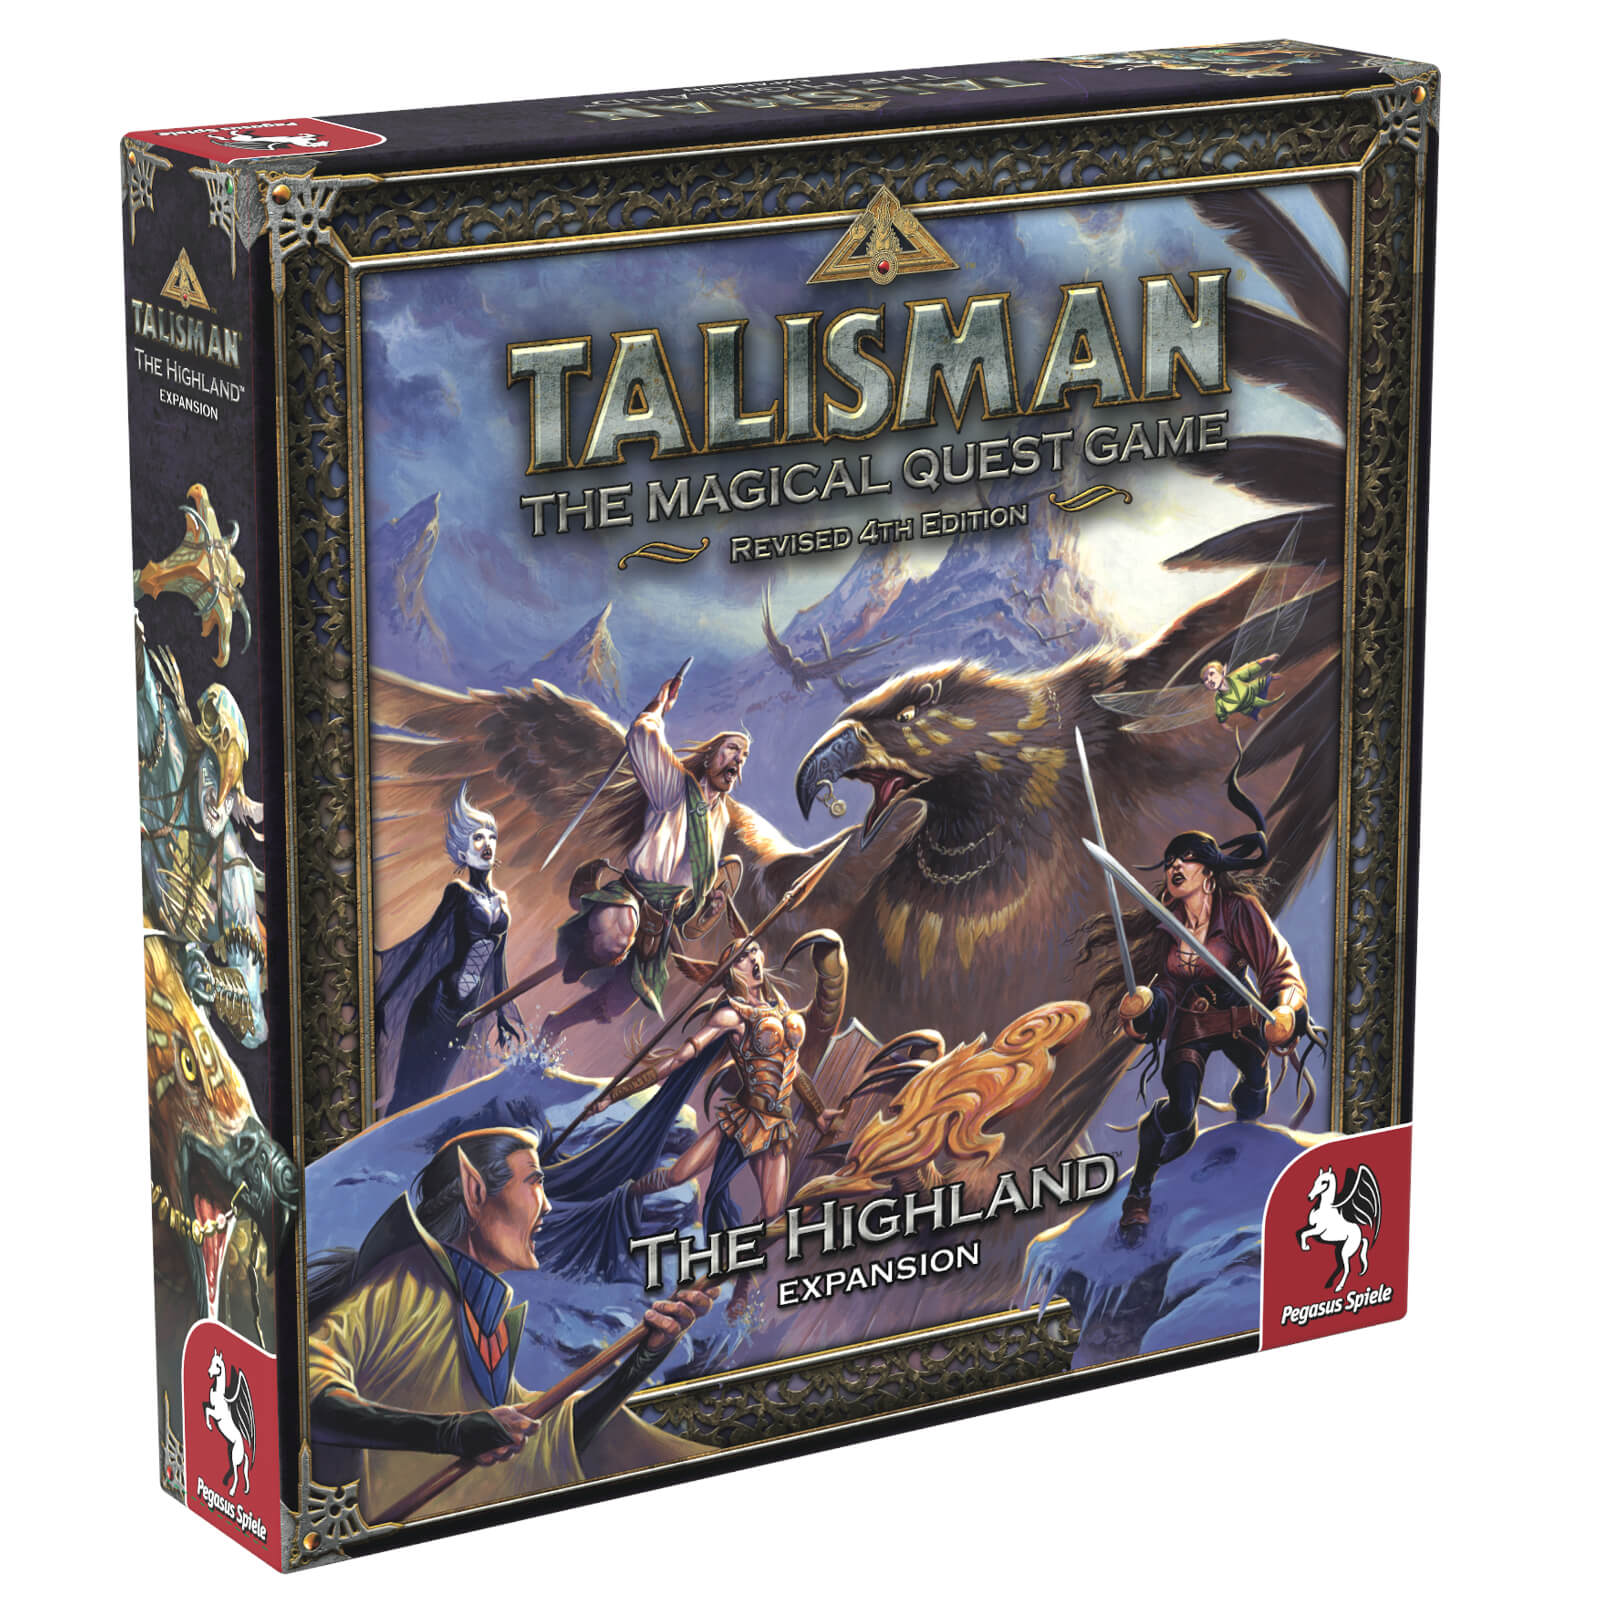 Image of Talisman The Highland Expansion